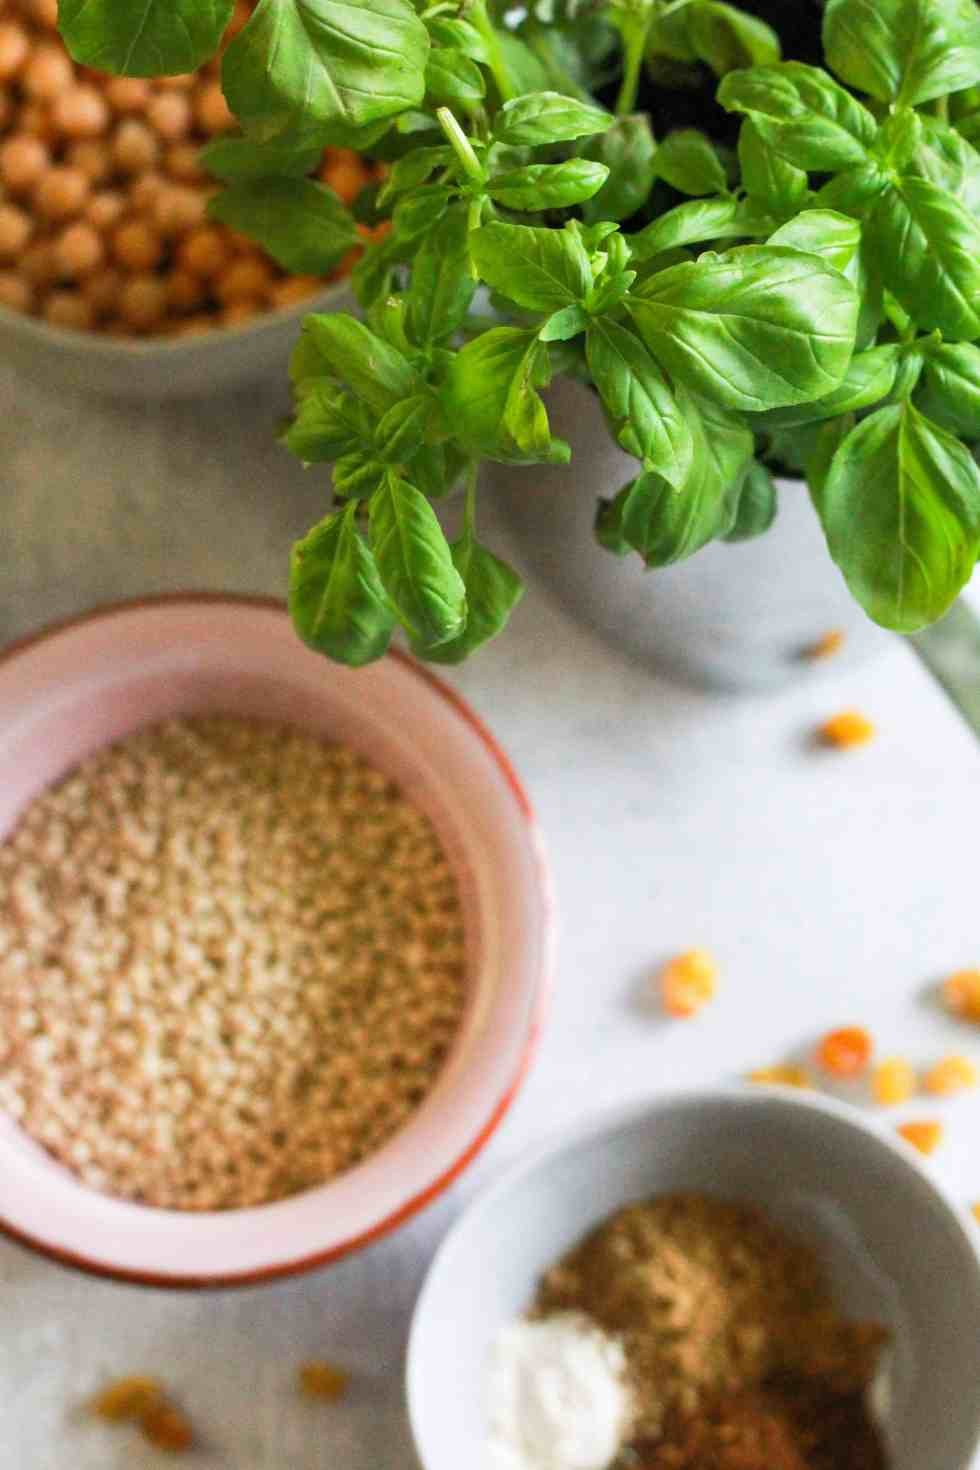 Fresh basil, dry couscous, chickpeas, and spices.